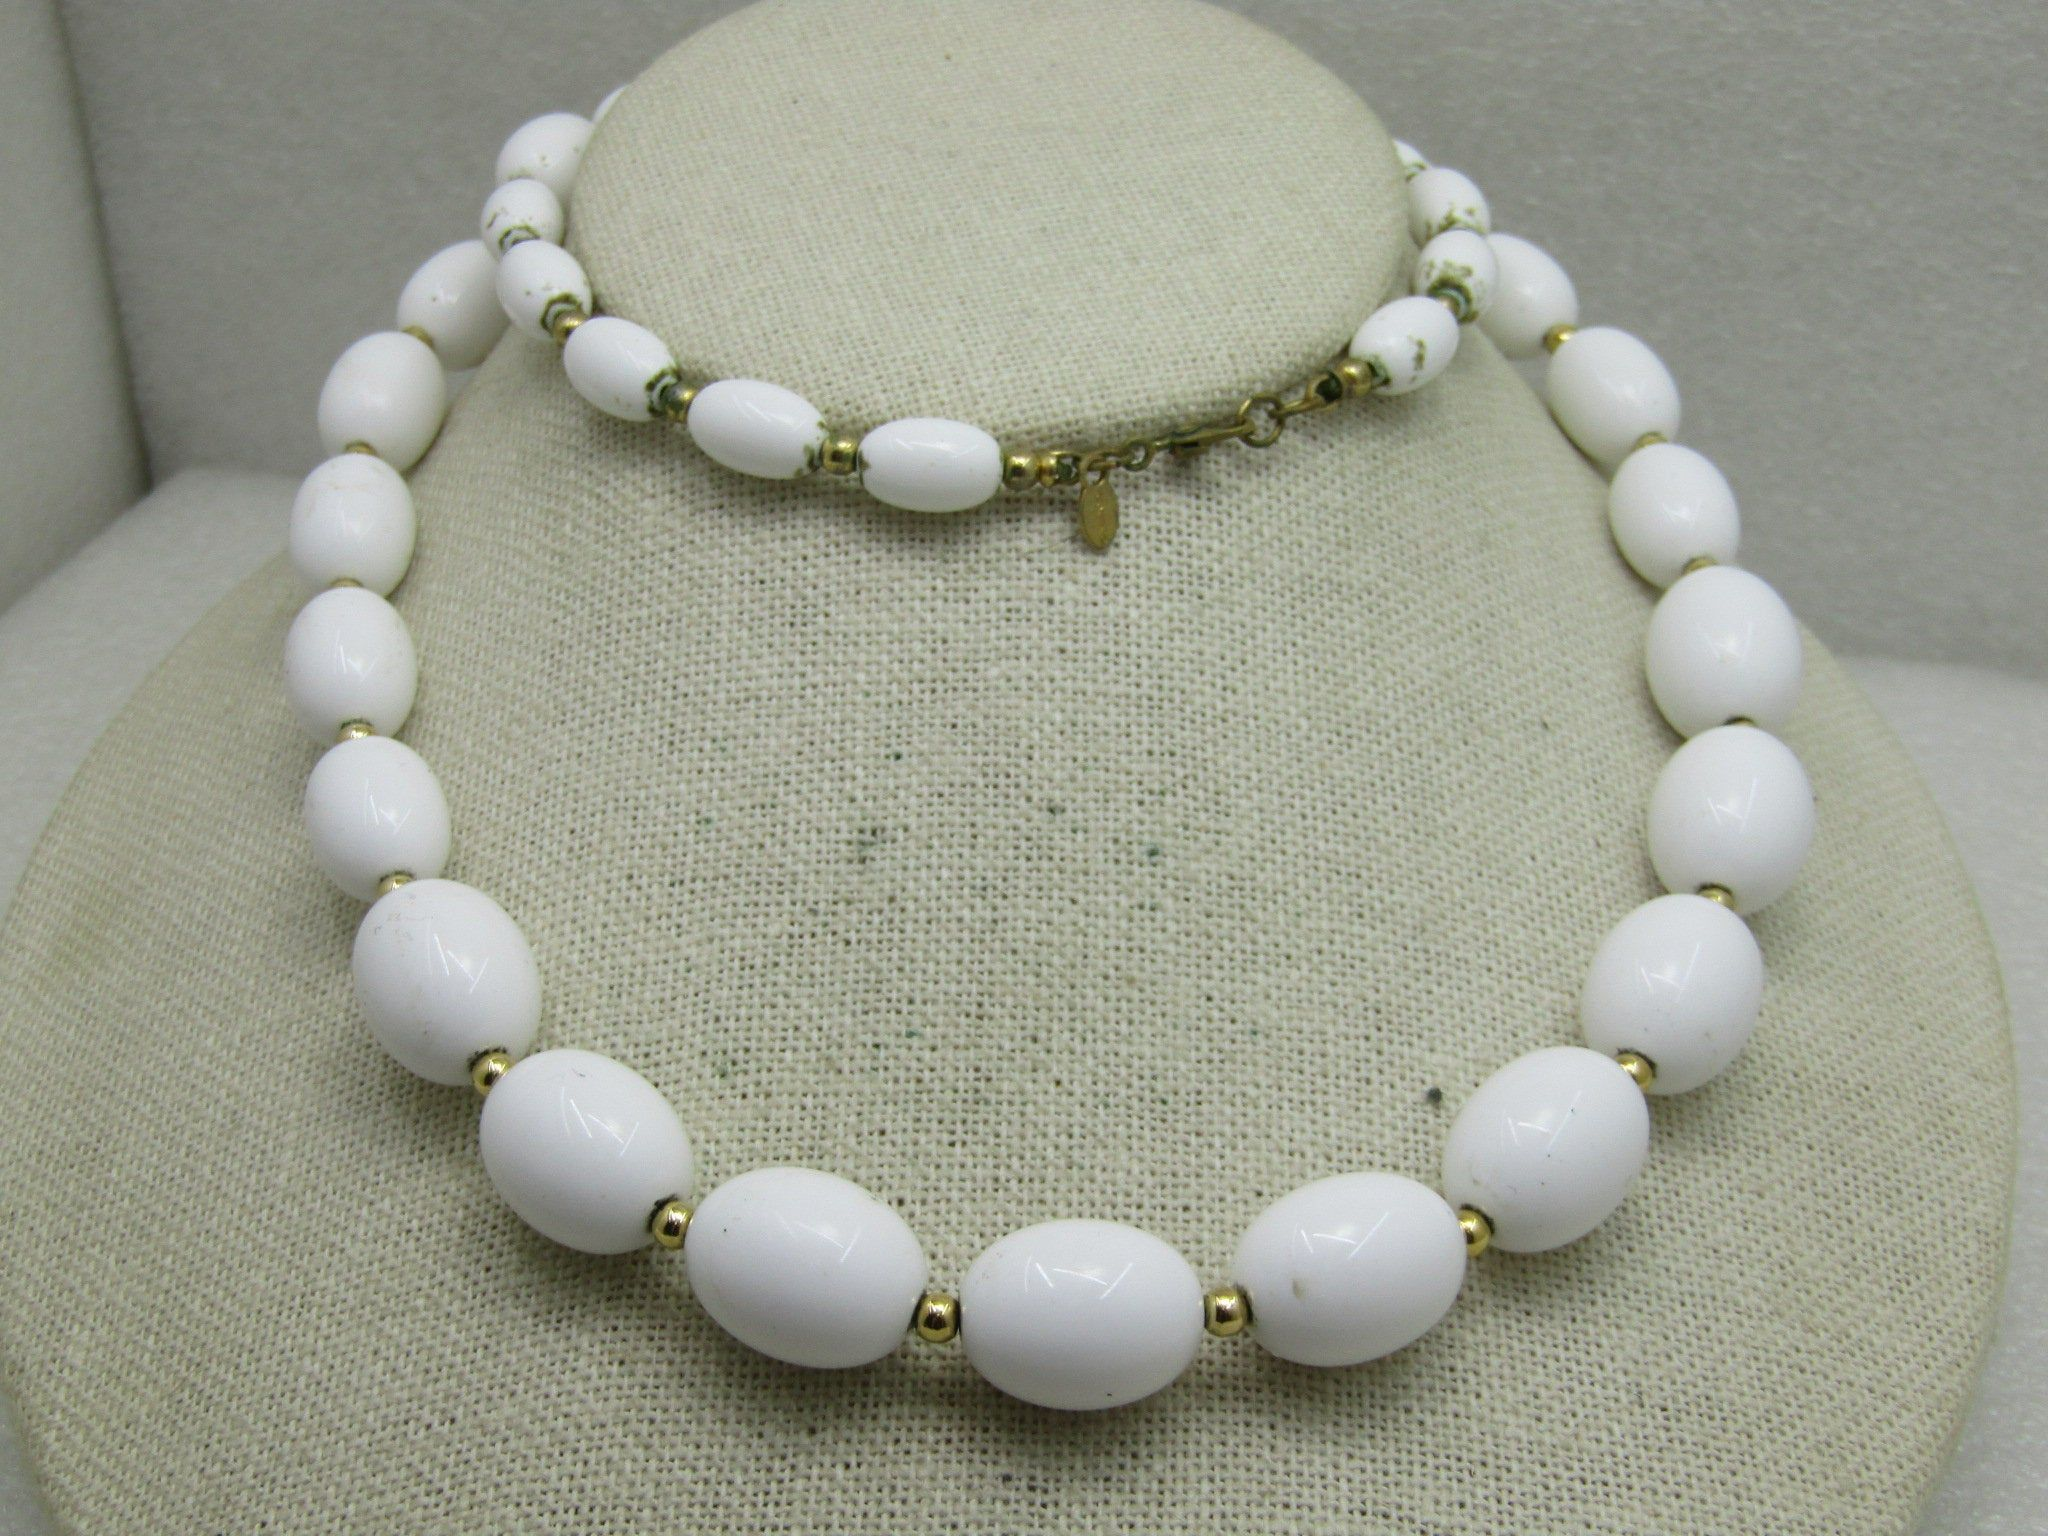 White Resin Beaded Necklace by Monet Single One Strand Round Beads Gold Seed Beads Details Vintage 1970/'s Costume Jewelry